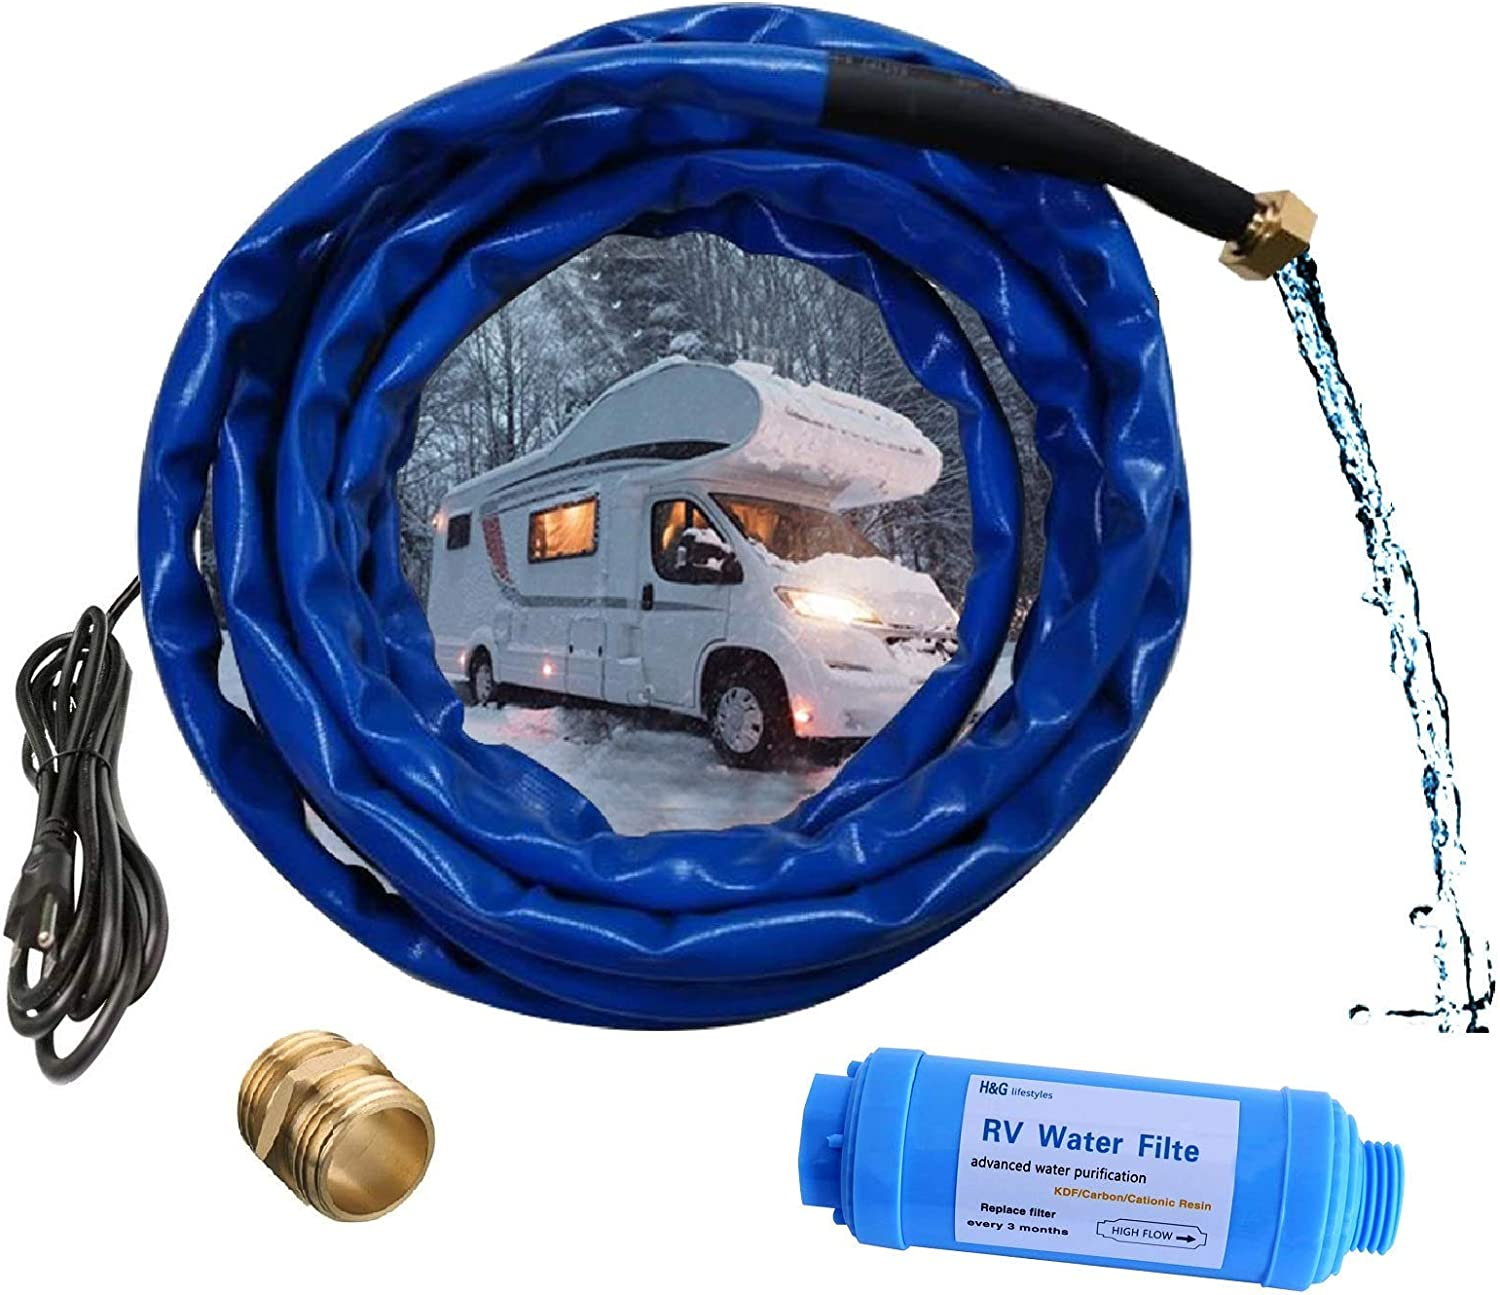 """H&G lifestyles Product Image Heated Water Hose for RV Water Filter Outdoor Furniture 1/2"""" Inner Diameter Self-Regulating Withstand Temperatures Down to -40°F 25 f"""